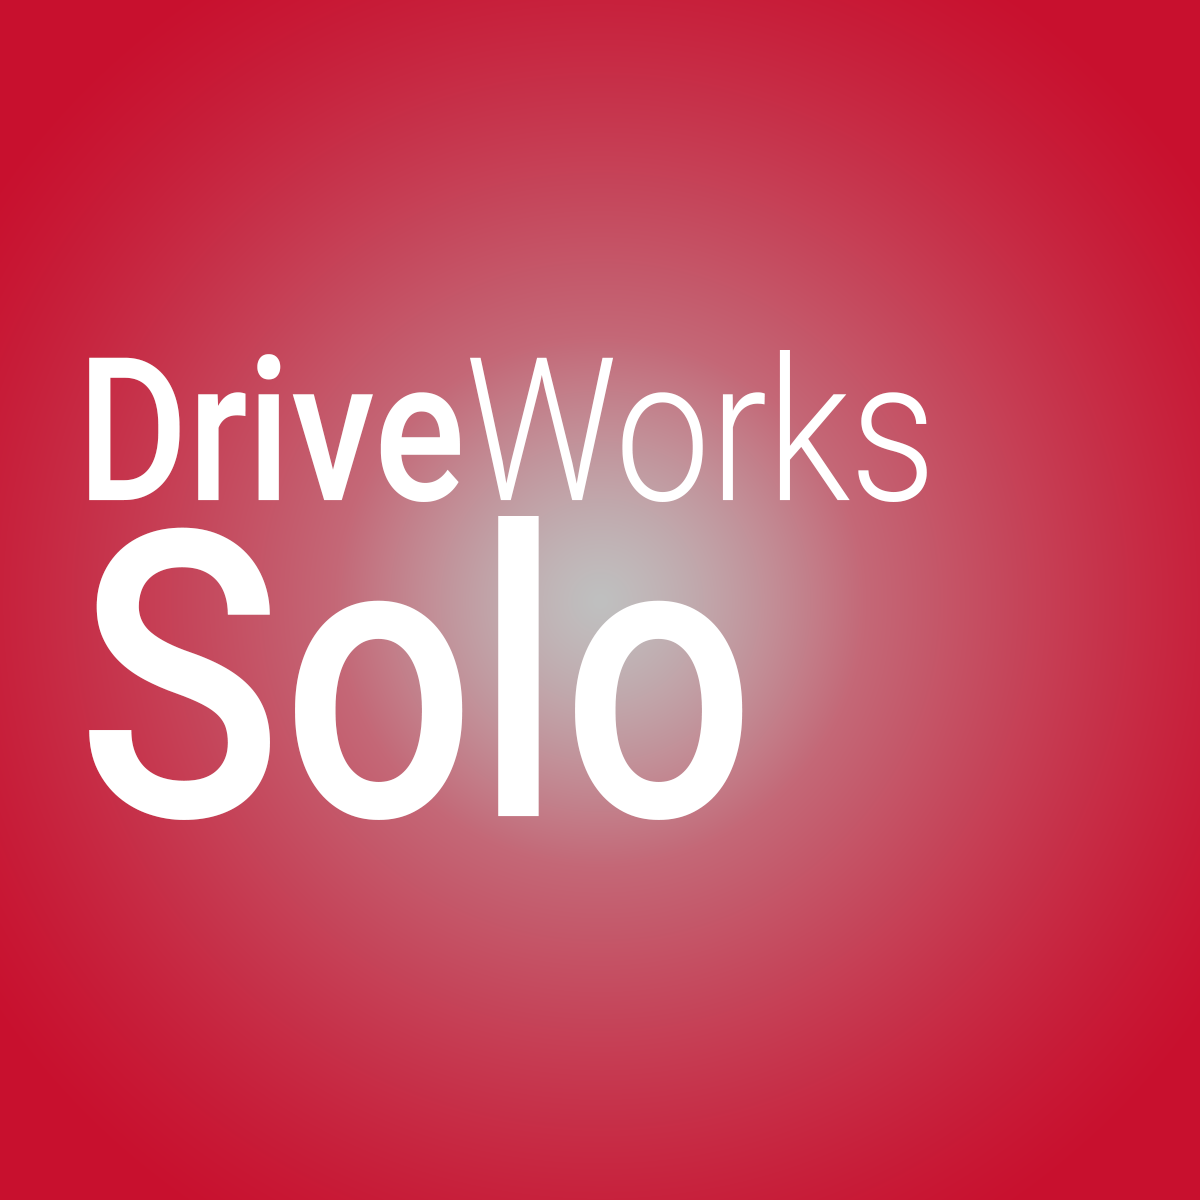 DriveWorks Solo is the second step in the DriveWorks tool ladder